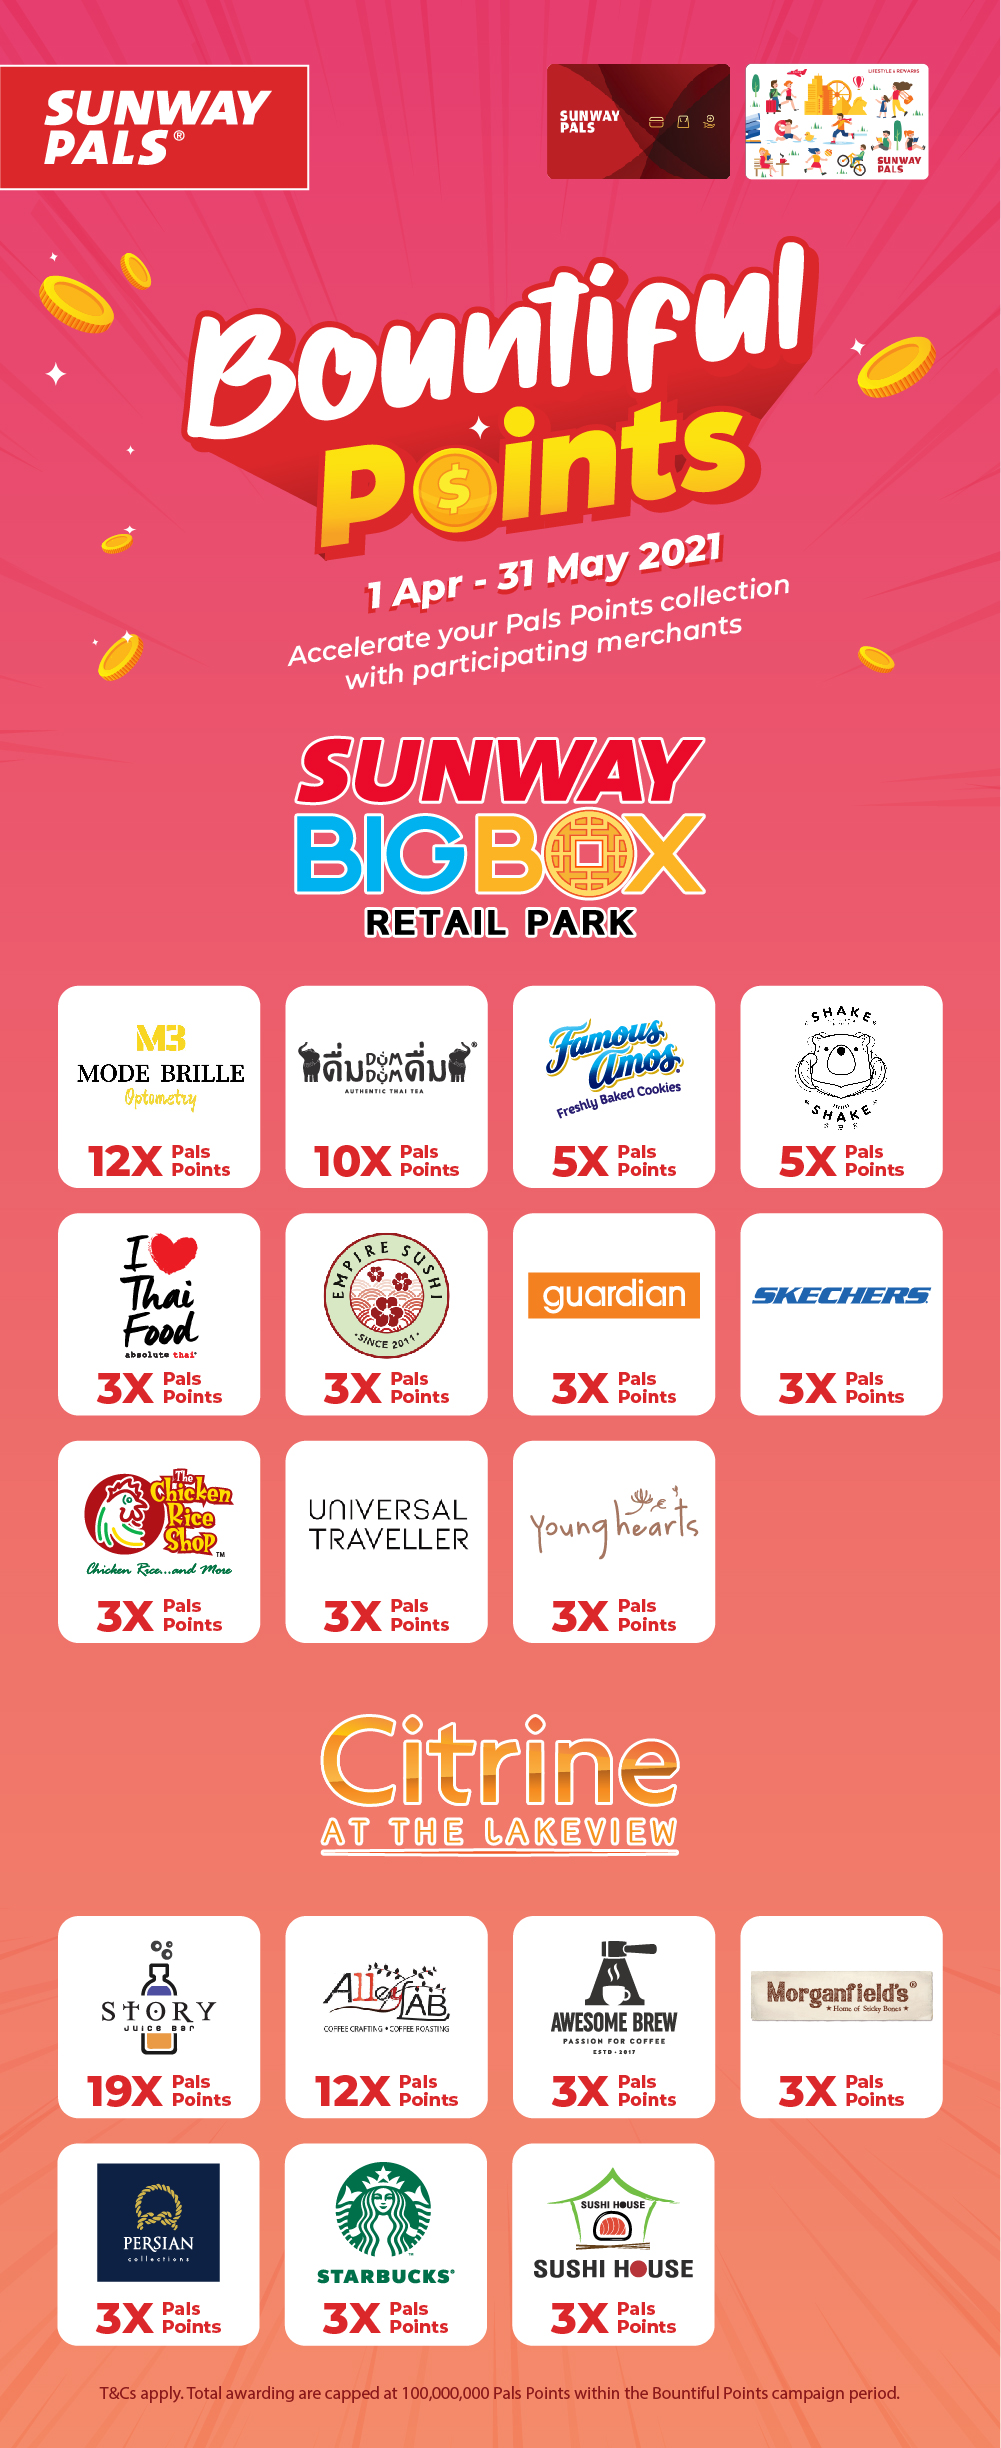 Collect up to 19X Pals Points Deals